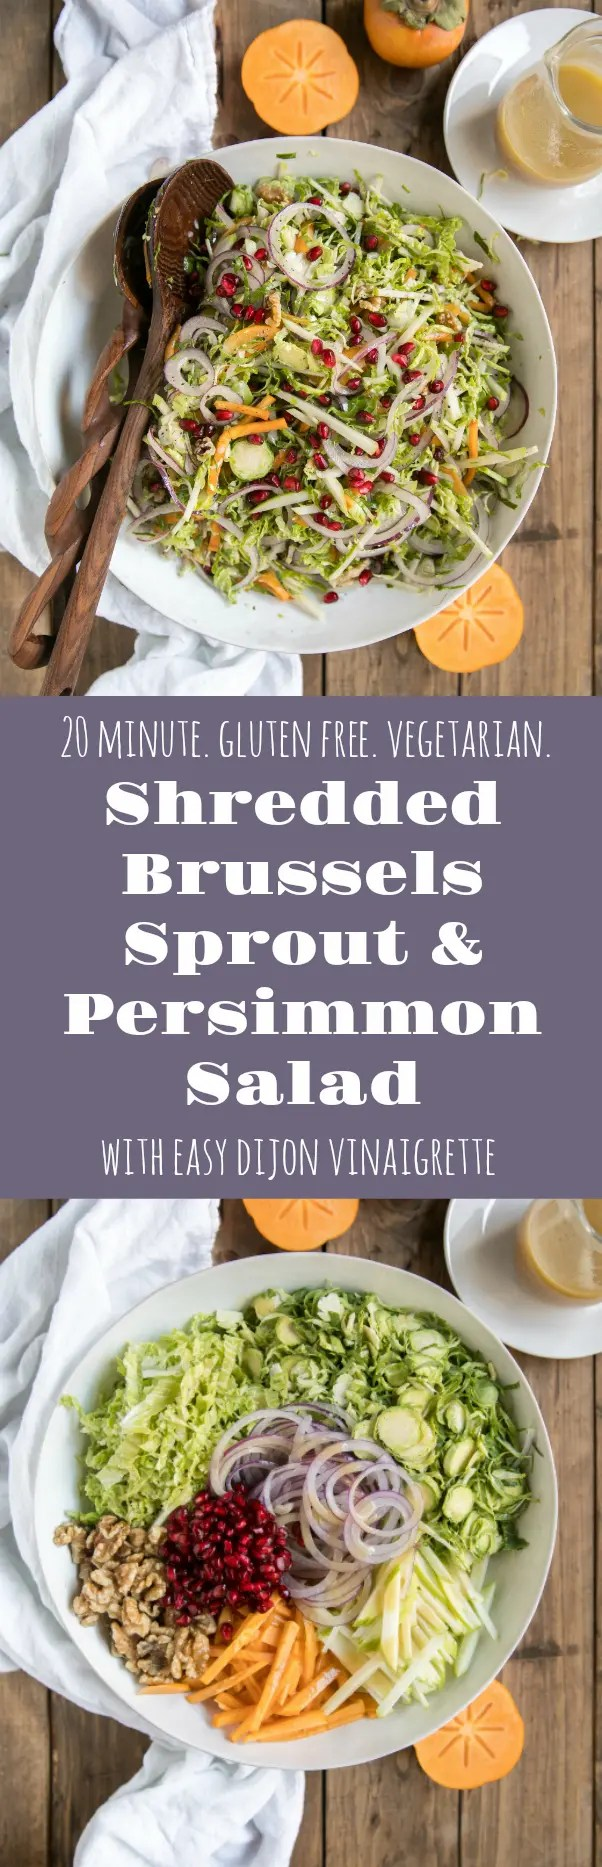 Shredded Brussels Sprout Persimmon Salad. Filled with some of falls finest like pomegranates, walnuts, pomegranates, apples, Brussels sprouts and drizzled with light dijon vinaigrette. via @theforkedspoon #brusselssprouts #saladrecipe #dijonvinaigrette #vegetarian #healthyrecipe #lowcarbrecipe